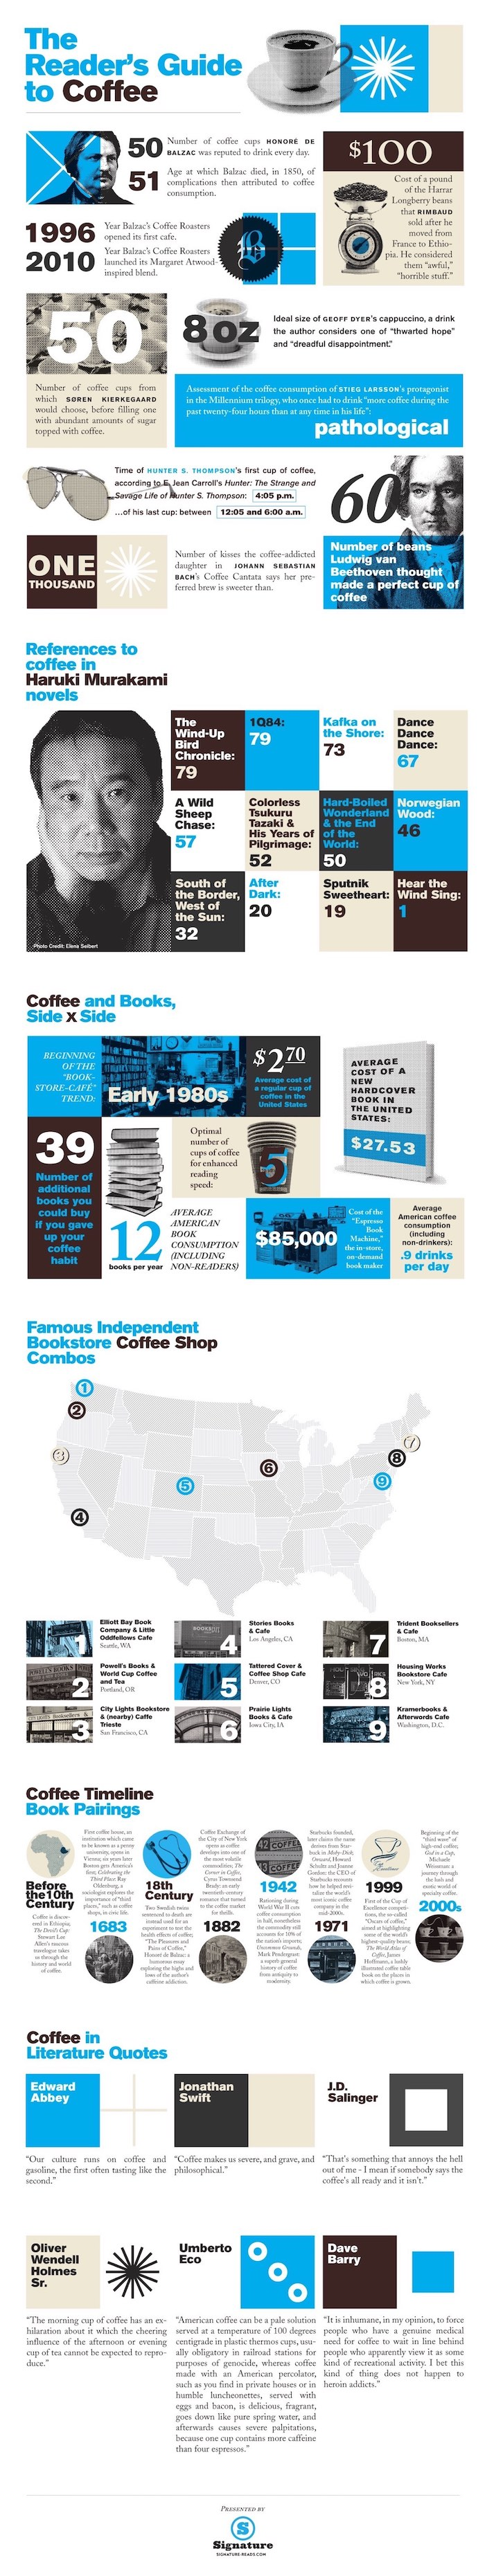 The-readers-guide-to-coffee-full-infographic